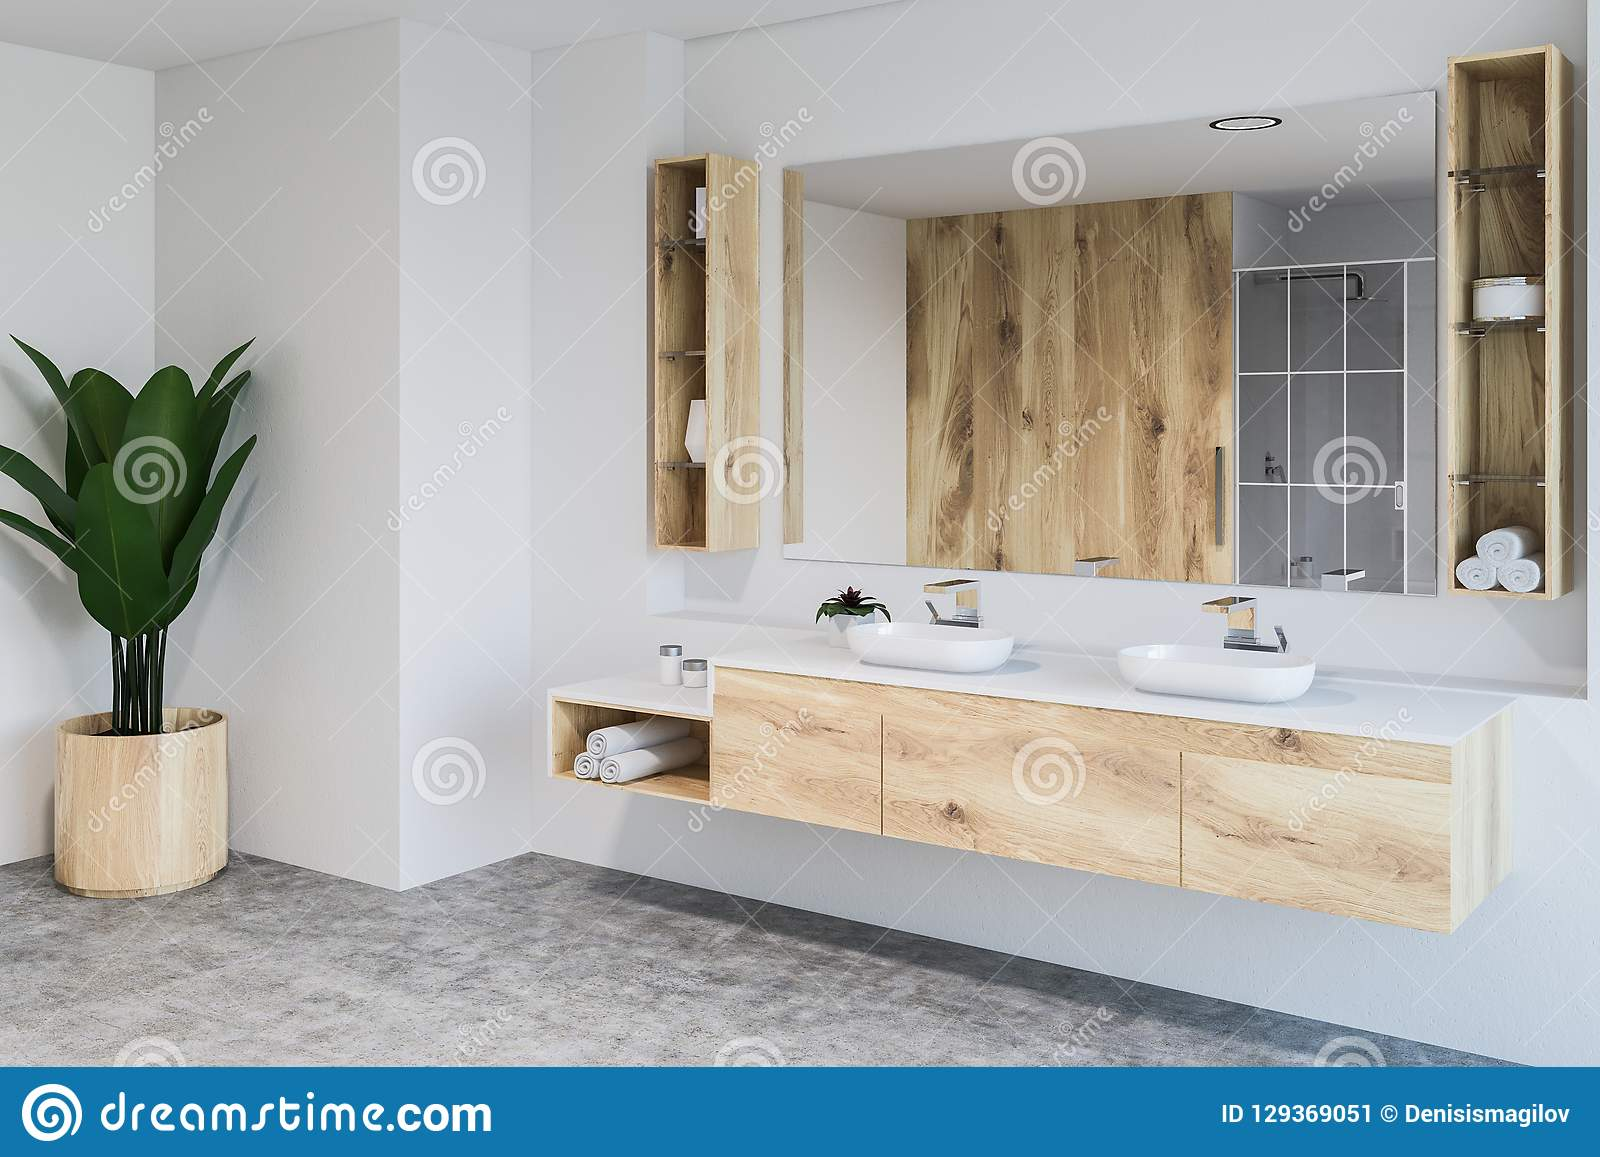 White Bathroom Corner Double Sink And Plant Stock Illustration Illustration Of Contemporary Interior 129369051